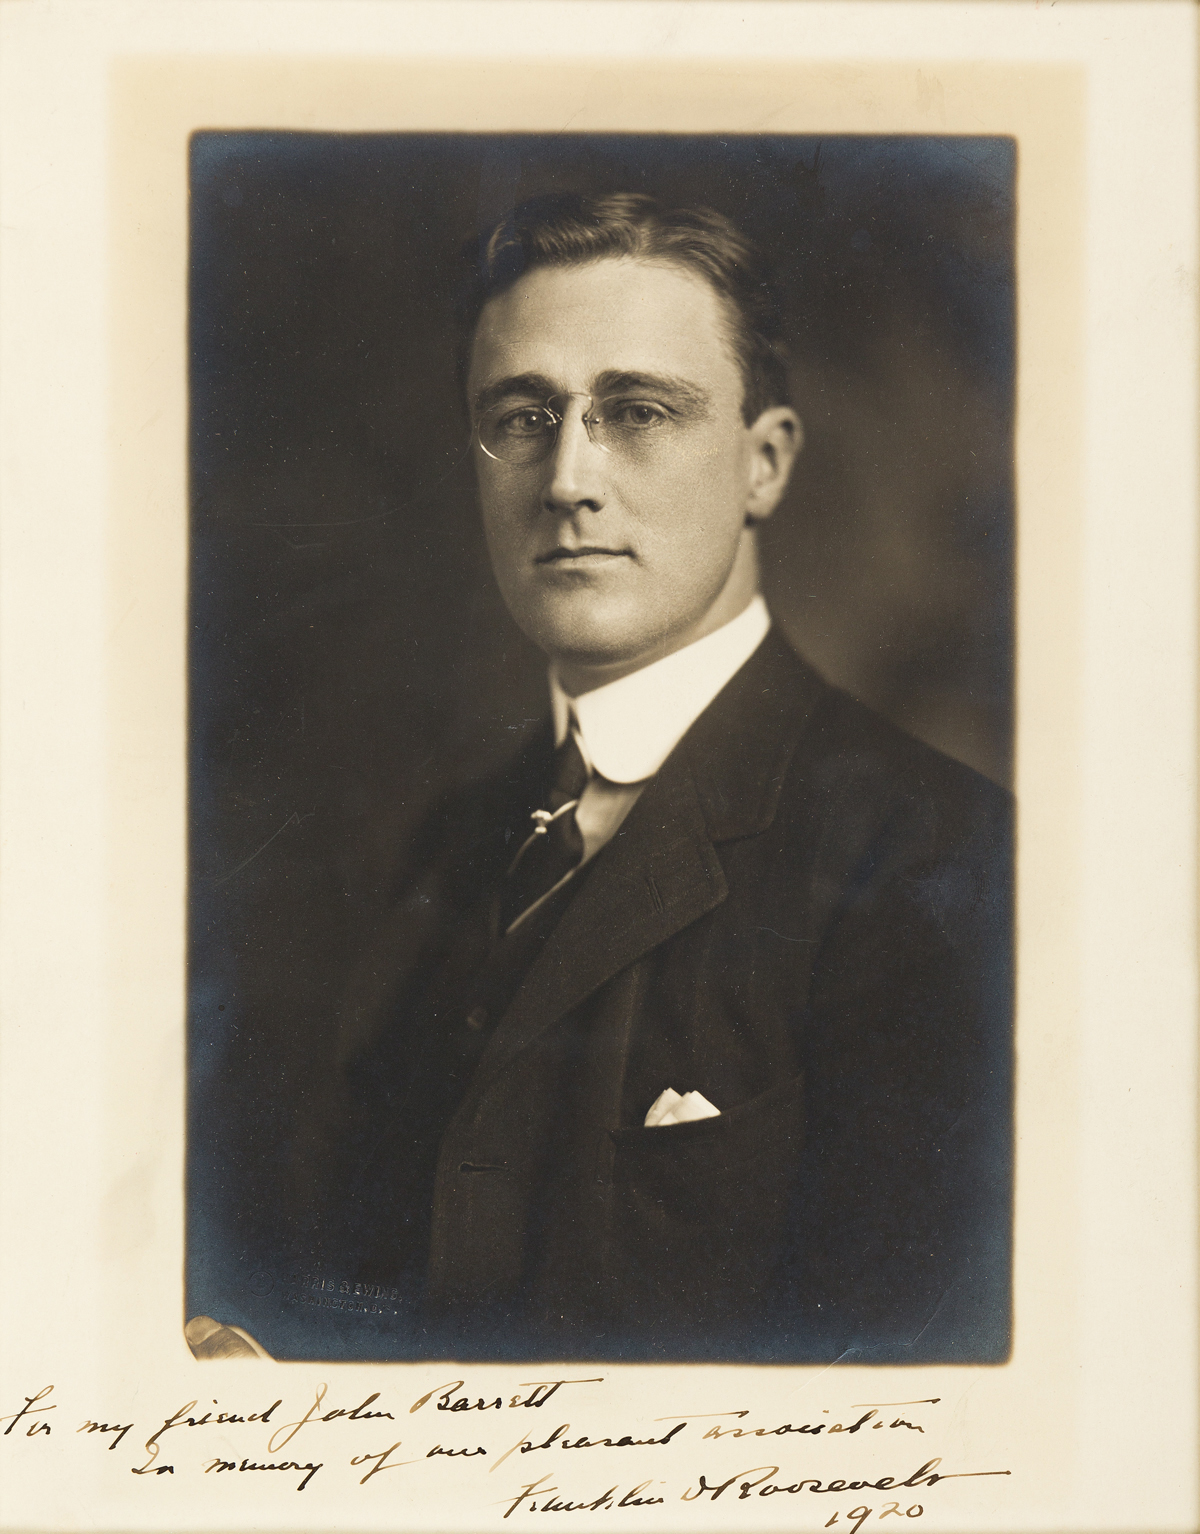 ROOSEVELT, FRANKLIN D. Photograph Signed and Inscribed, For my friend John Barrett / In memory of our pleasant association,